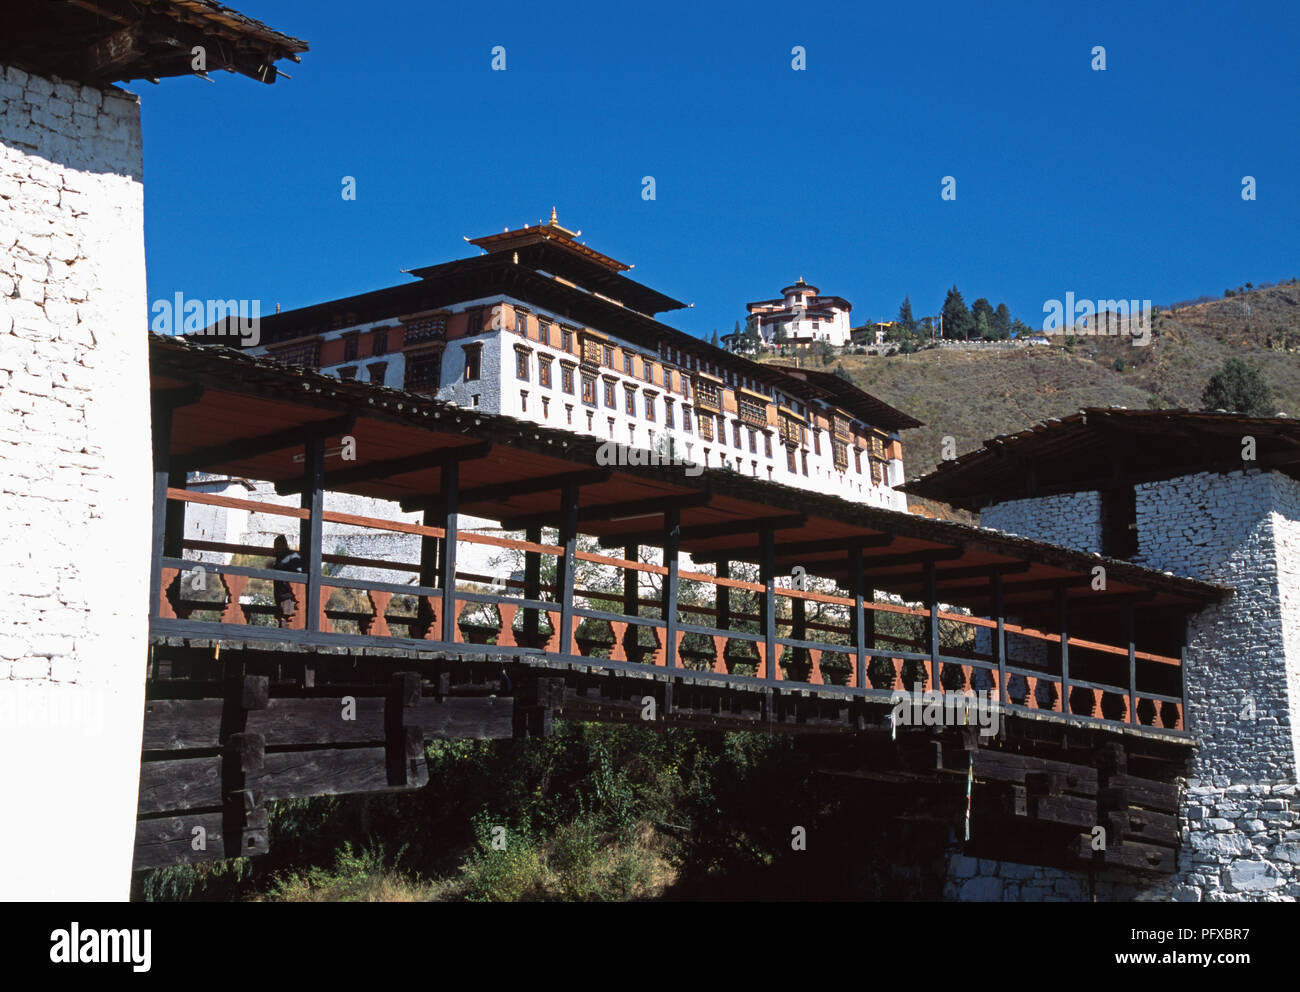 Reconstructed traditional bridge across Paro Chhu river to Rinpung Dzong in Paro district, Bhutan - Stock Image